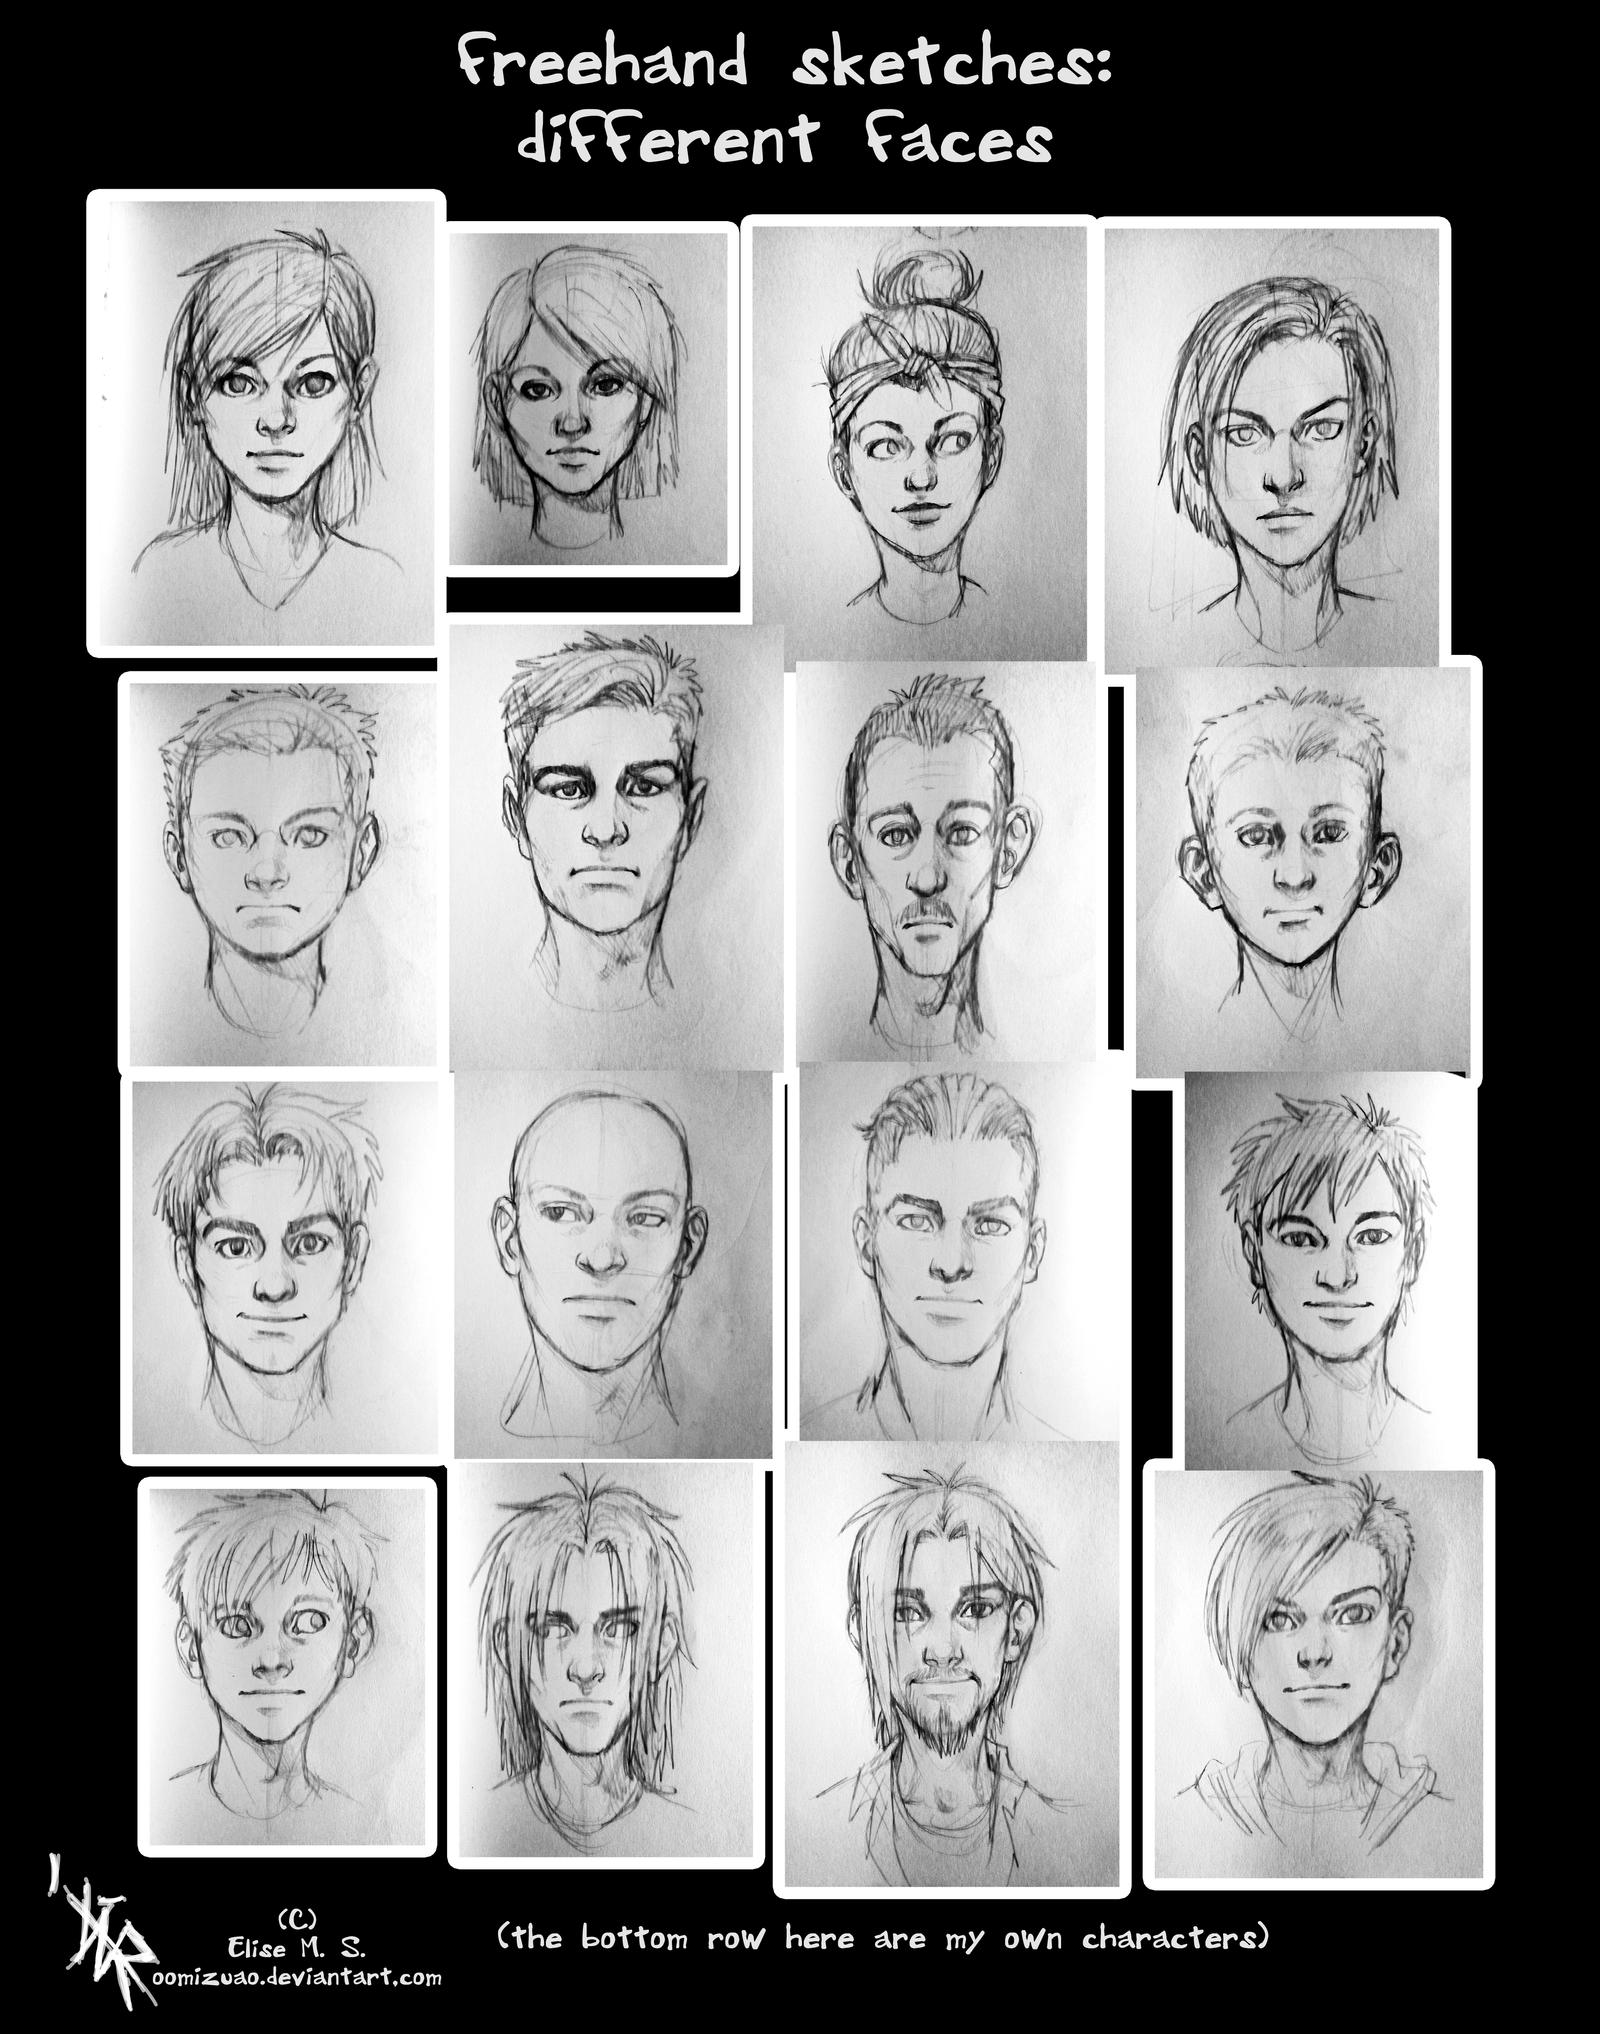 sketches - different face types by oomizuao